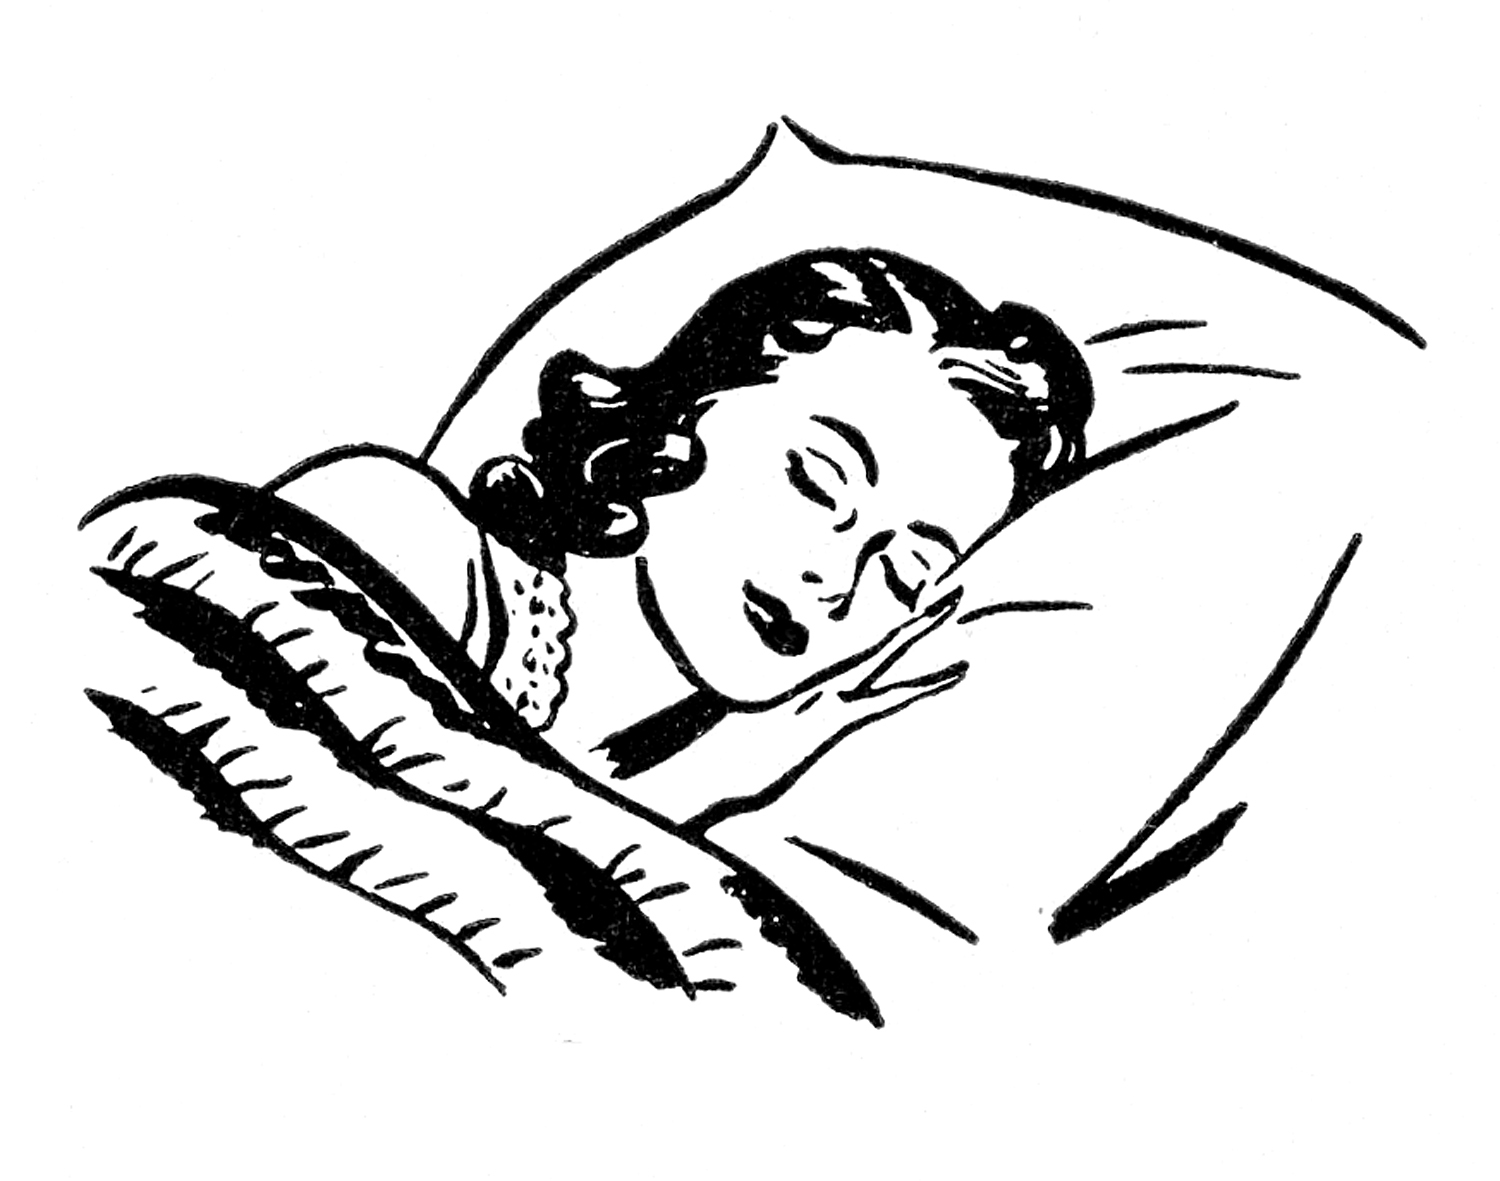 Sleeping clipart well rested, Sleeping well rested.